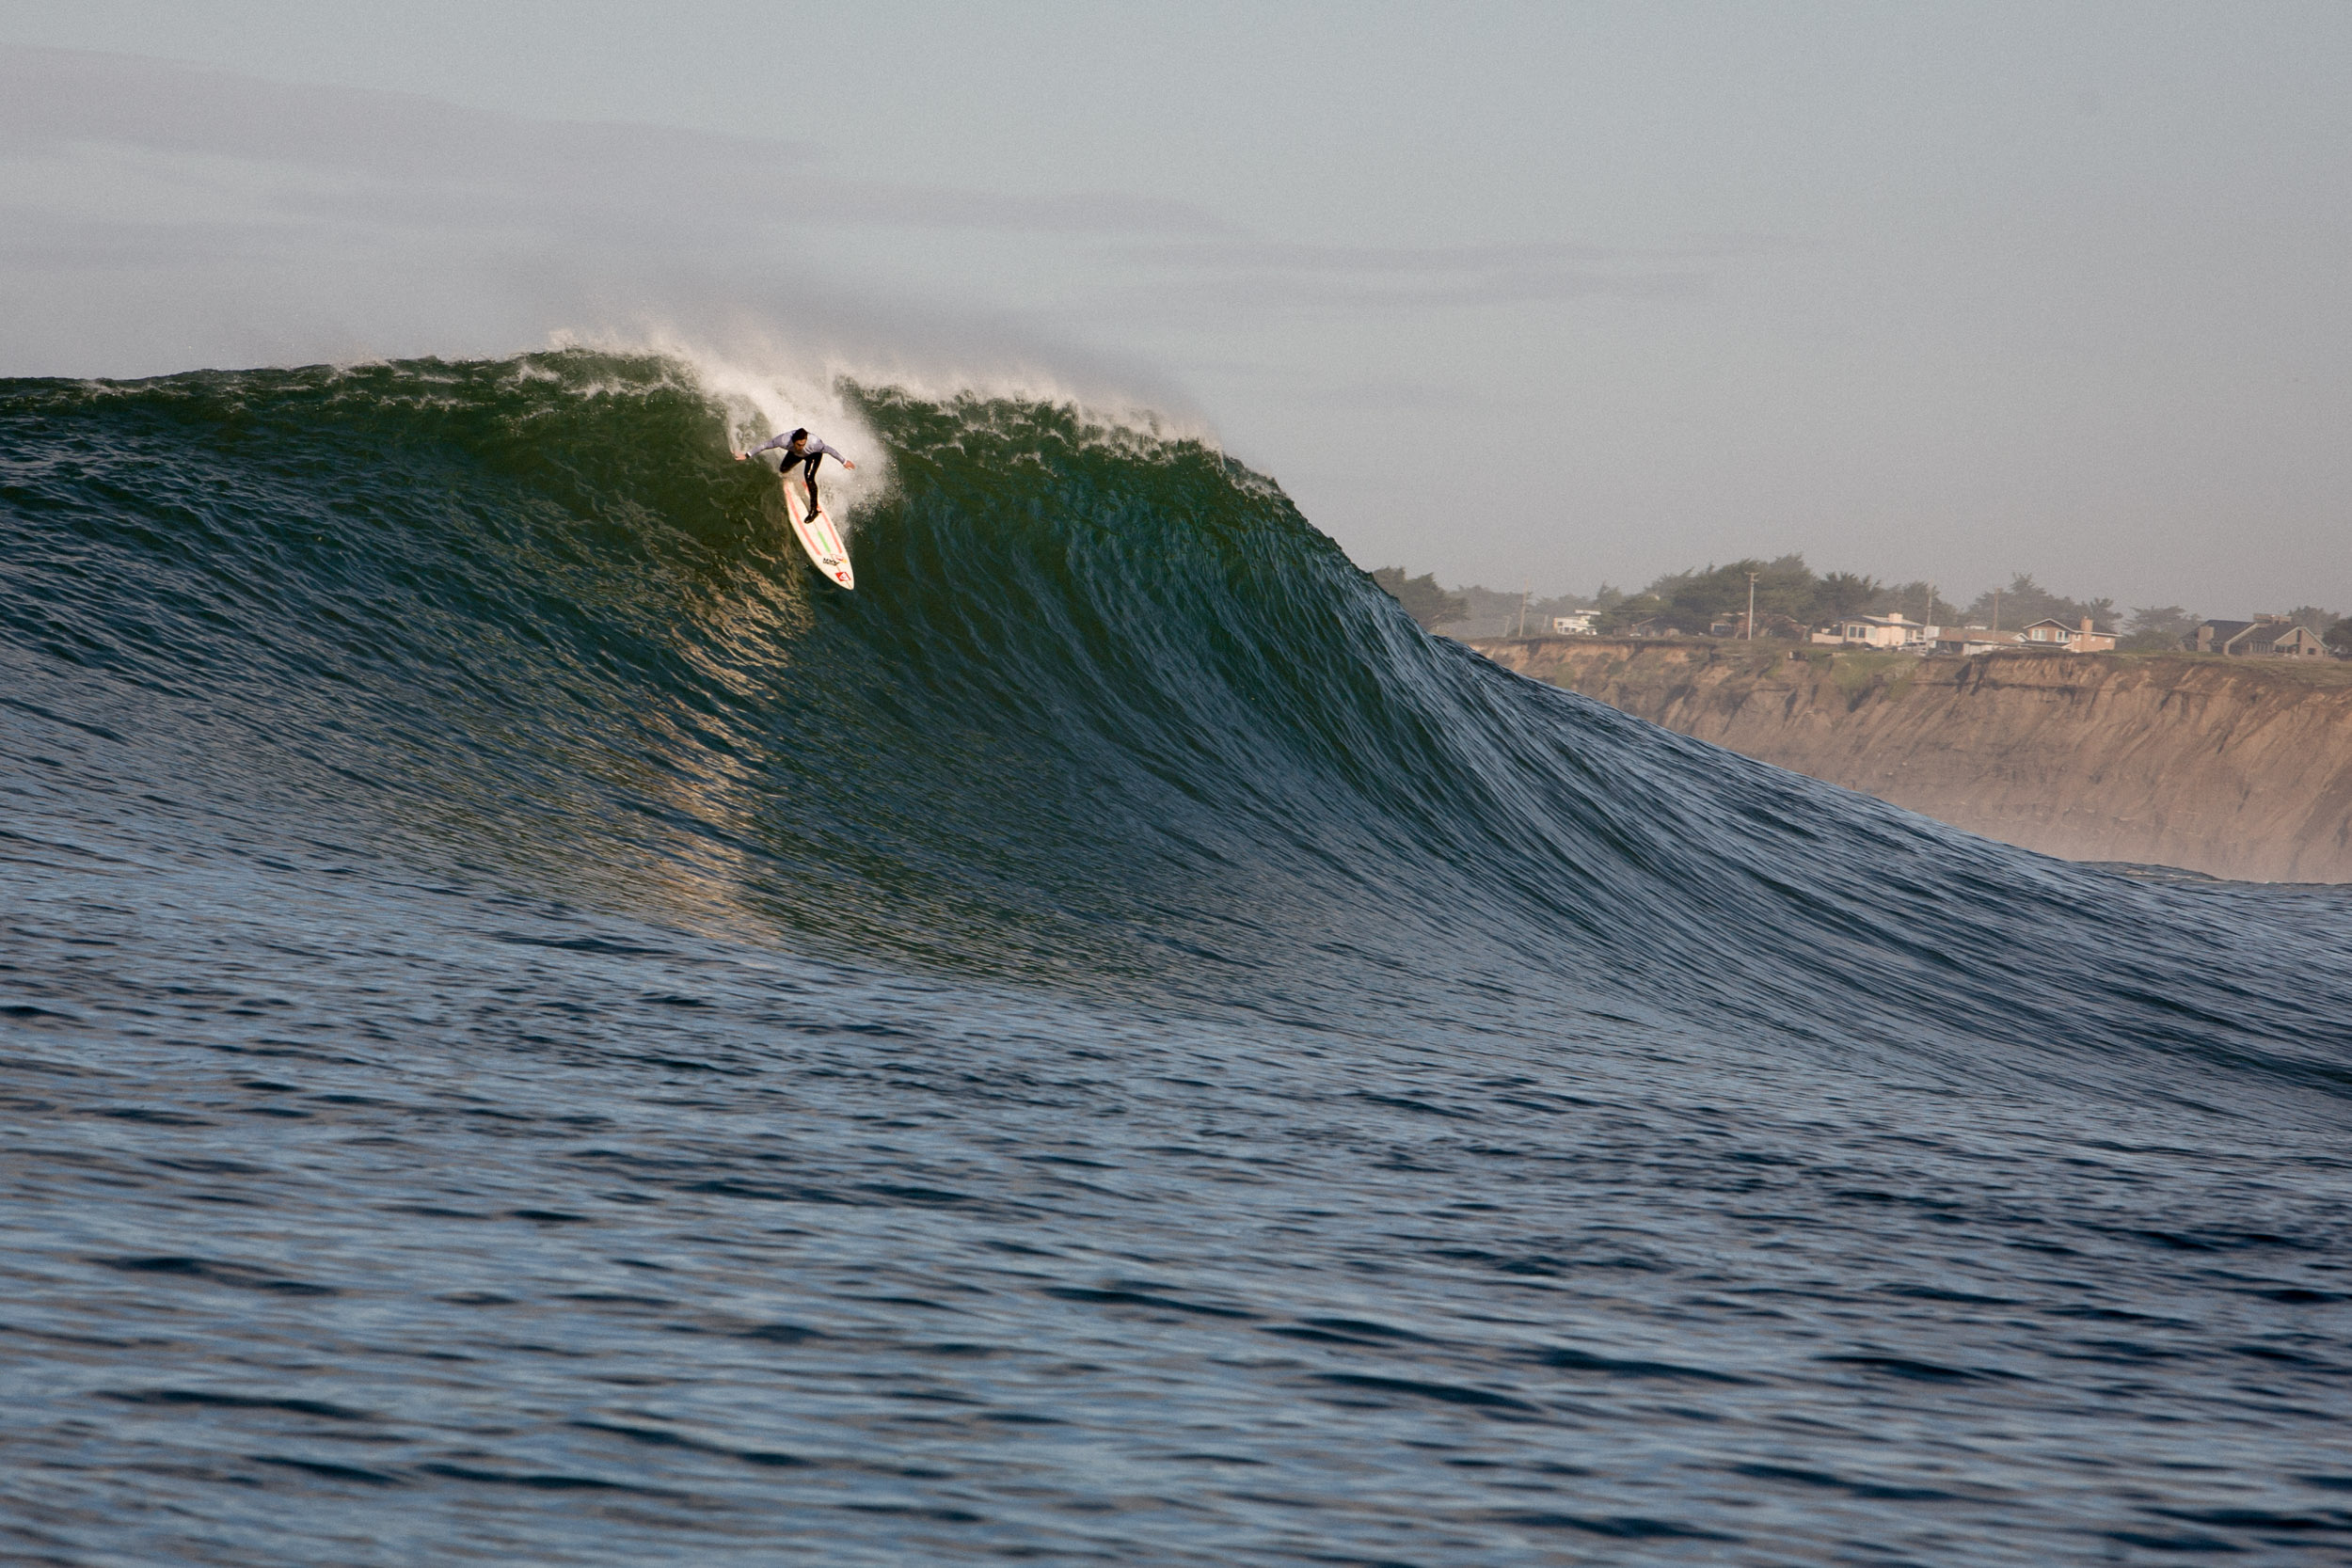 Ross Clarke-Jones at Mavericks, Half Moon Bay, California